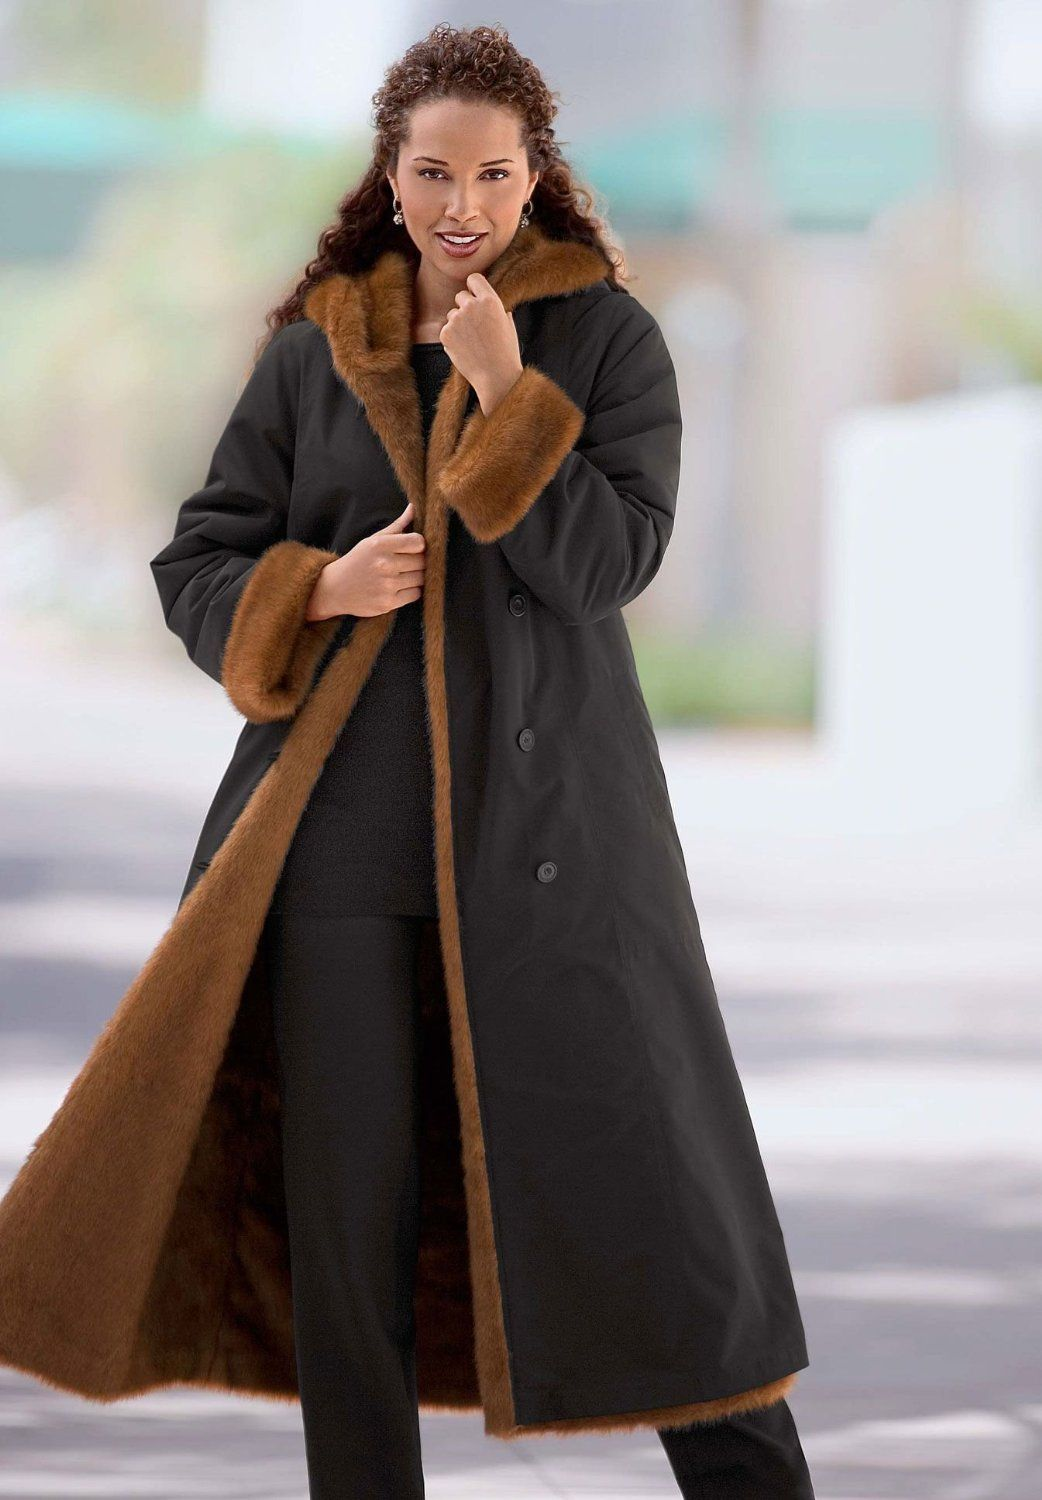 women s winter coats | Womens Coats | Pinterest | Winter coats for ...